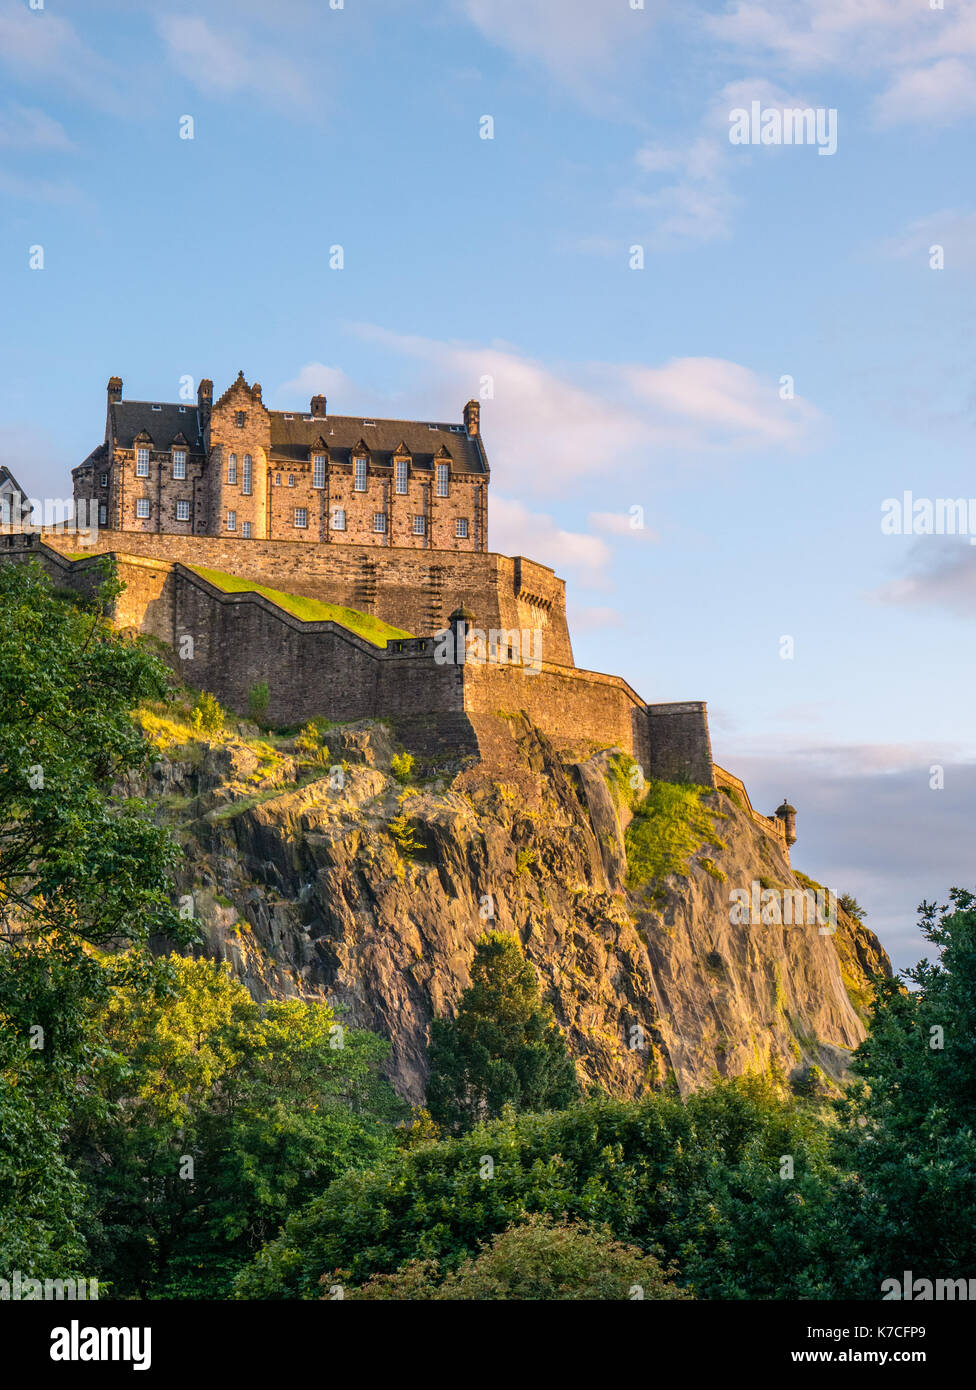 Sunset, Edinburgh Castle, viewed from Princes Street Gardens, Edinburgh Castle, Castle Rock, Edinburgh, Scotland, UK, GB. - Stock Image